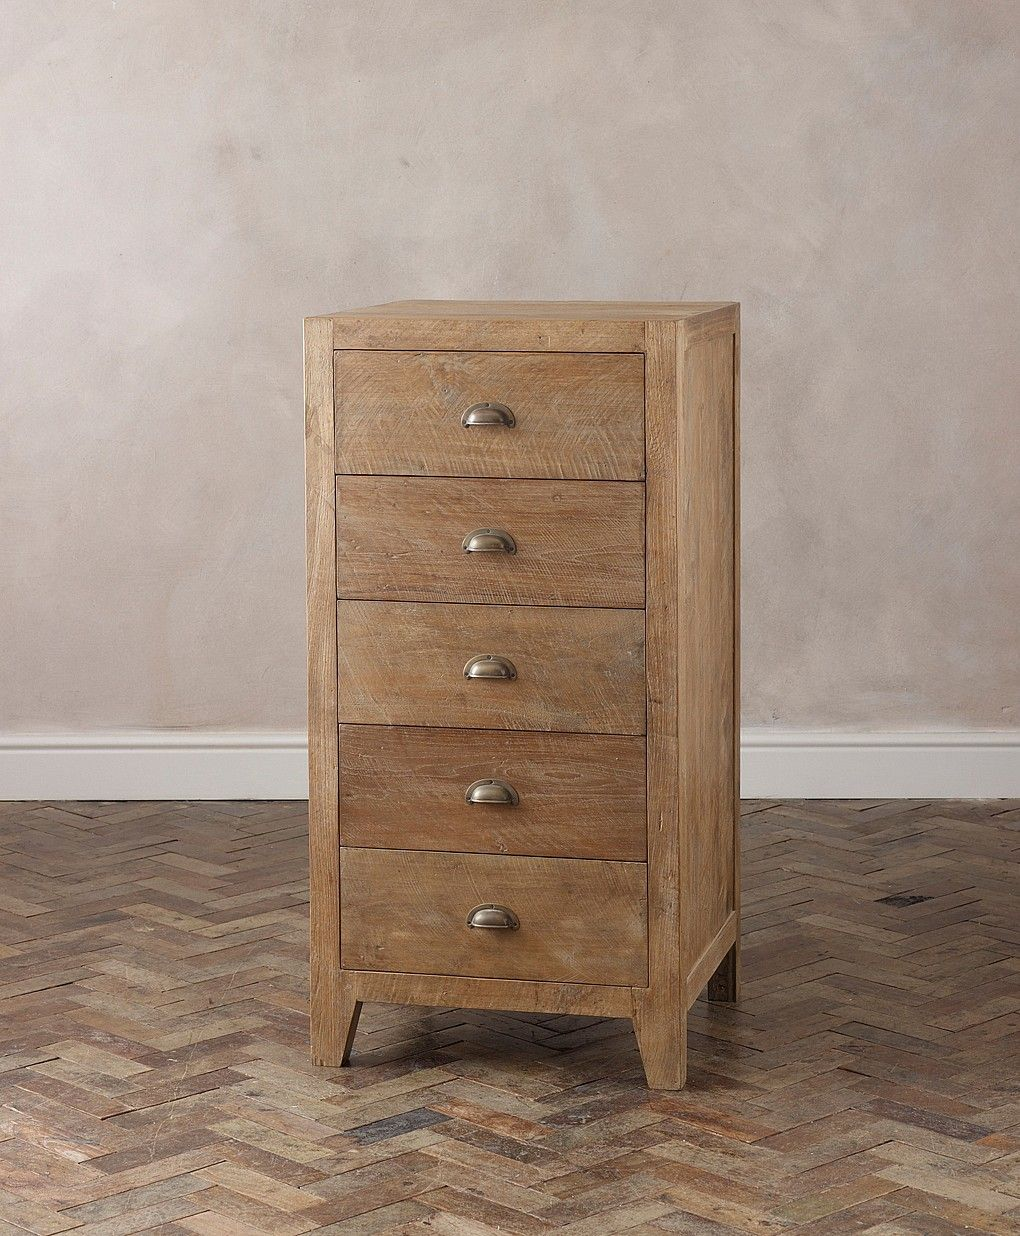 Sumatra Wooden Storage Tallboy From Lombok Tallboy Chest Of Drawers Drawers Wooden Storage